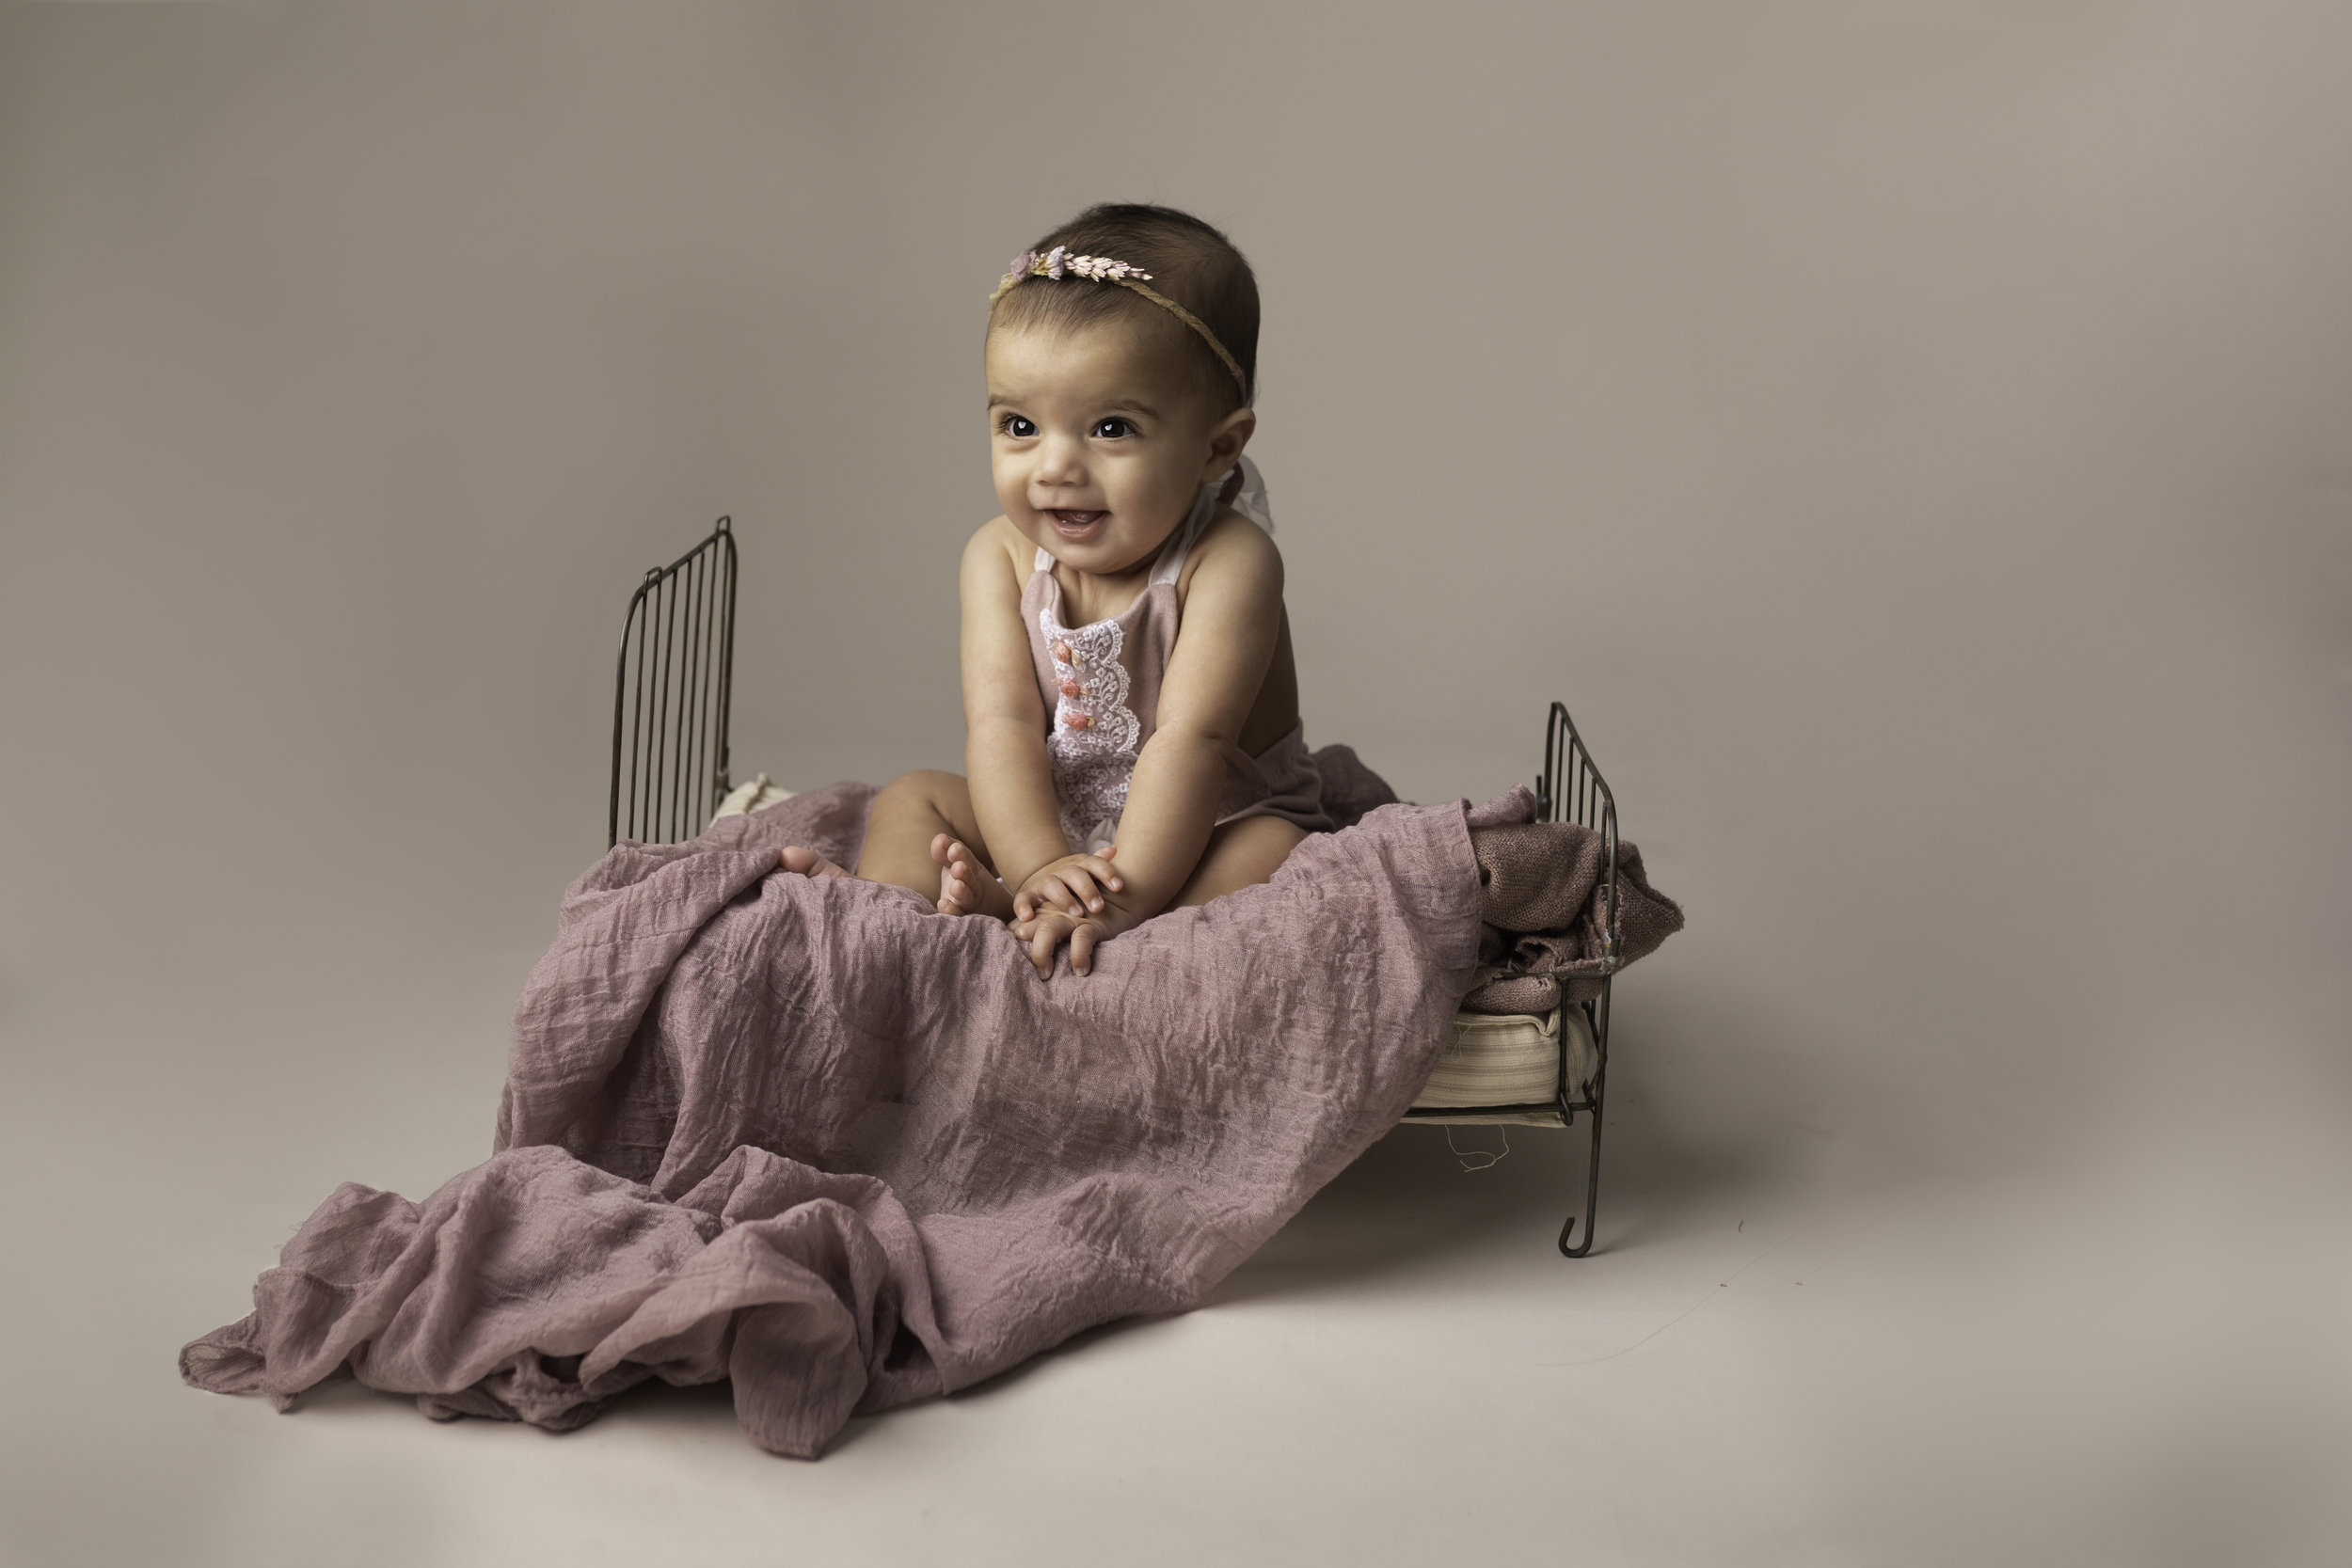 Lea-cooper-photography-childrens-photographer-portrait-session-sitter-session-6-months-old-photos-willenhall-wolverahmpton-birmingham-west-midlands-uk-5.jpg